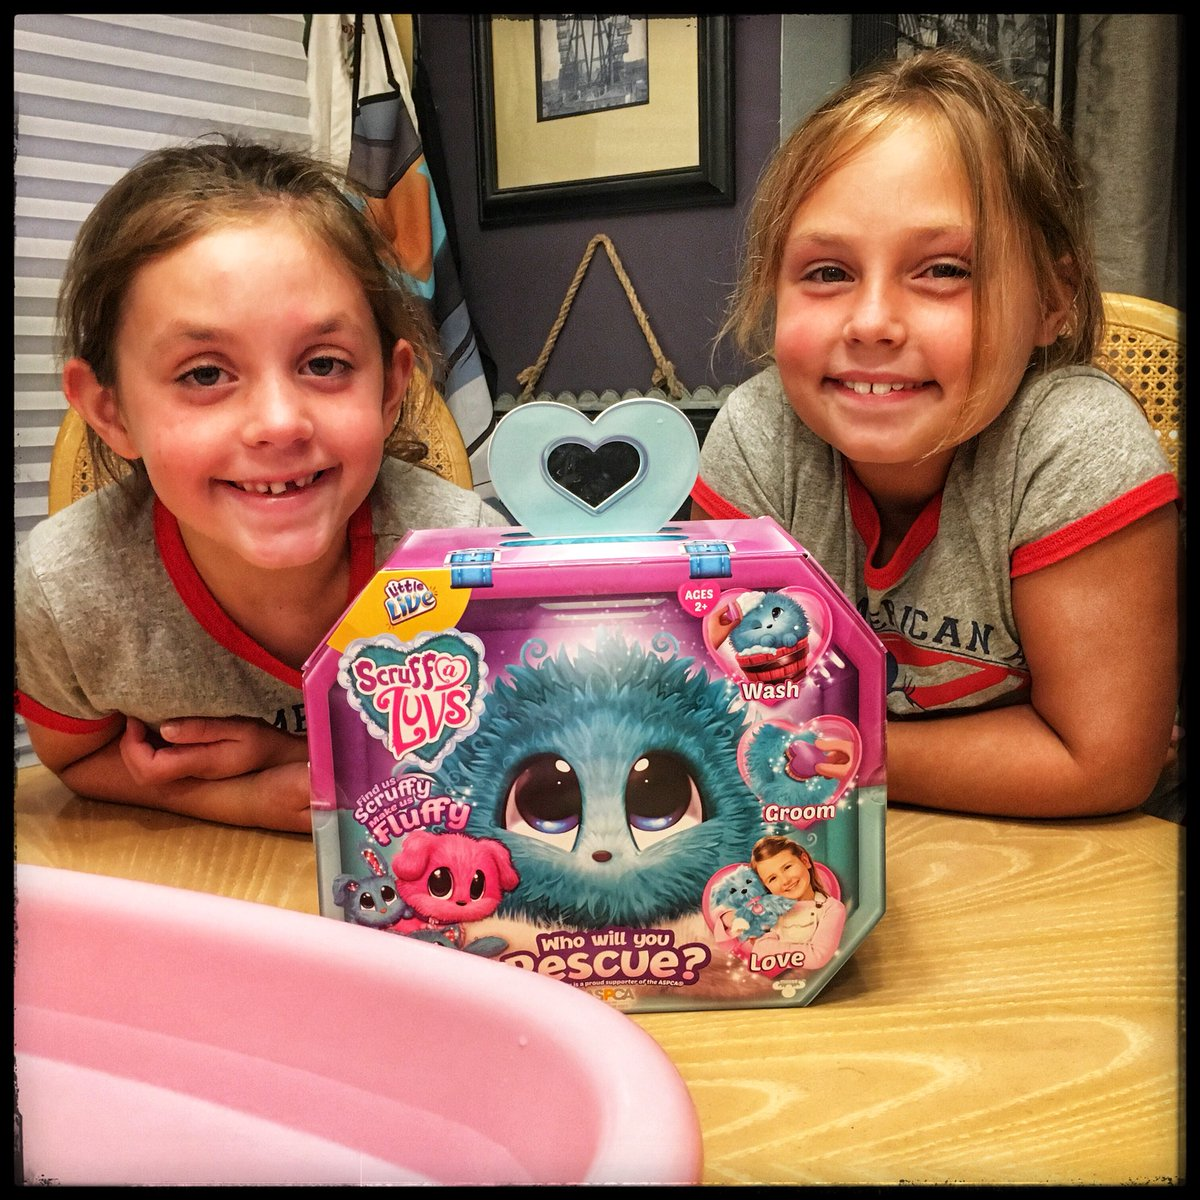 Since it's #FlashbackFriday AND we're doing a #ScruffALuvs #TwitterParty wiuth @TheToyInsider and @Moose_Toys, here's a throwback to when my girls and I opened the first Scruff A Luvs<br>http://pic.twitter.com/iqGKAa91Ld